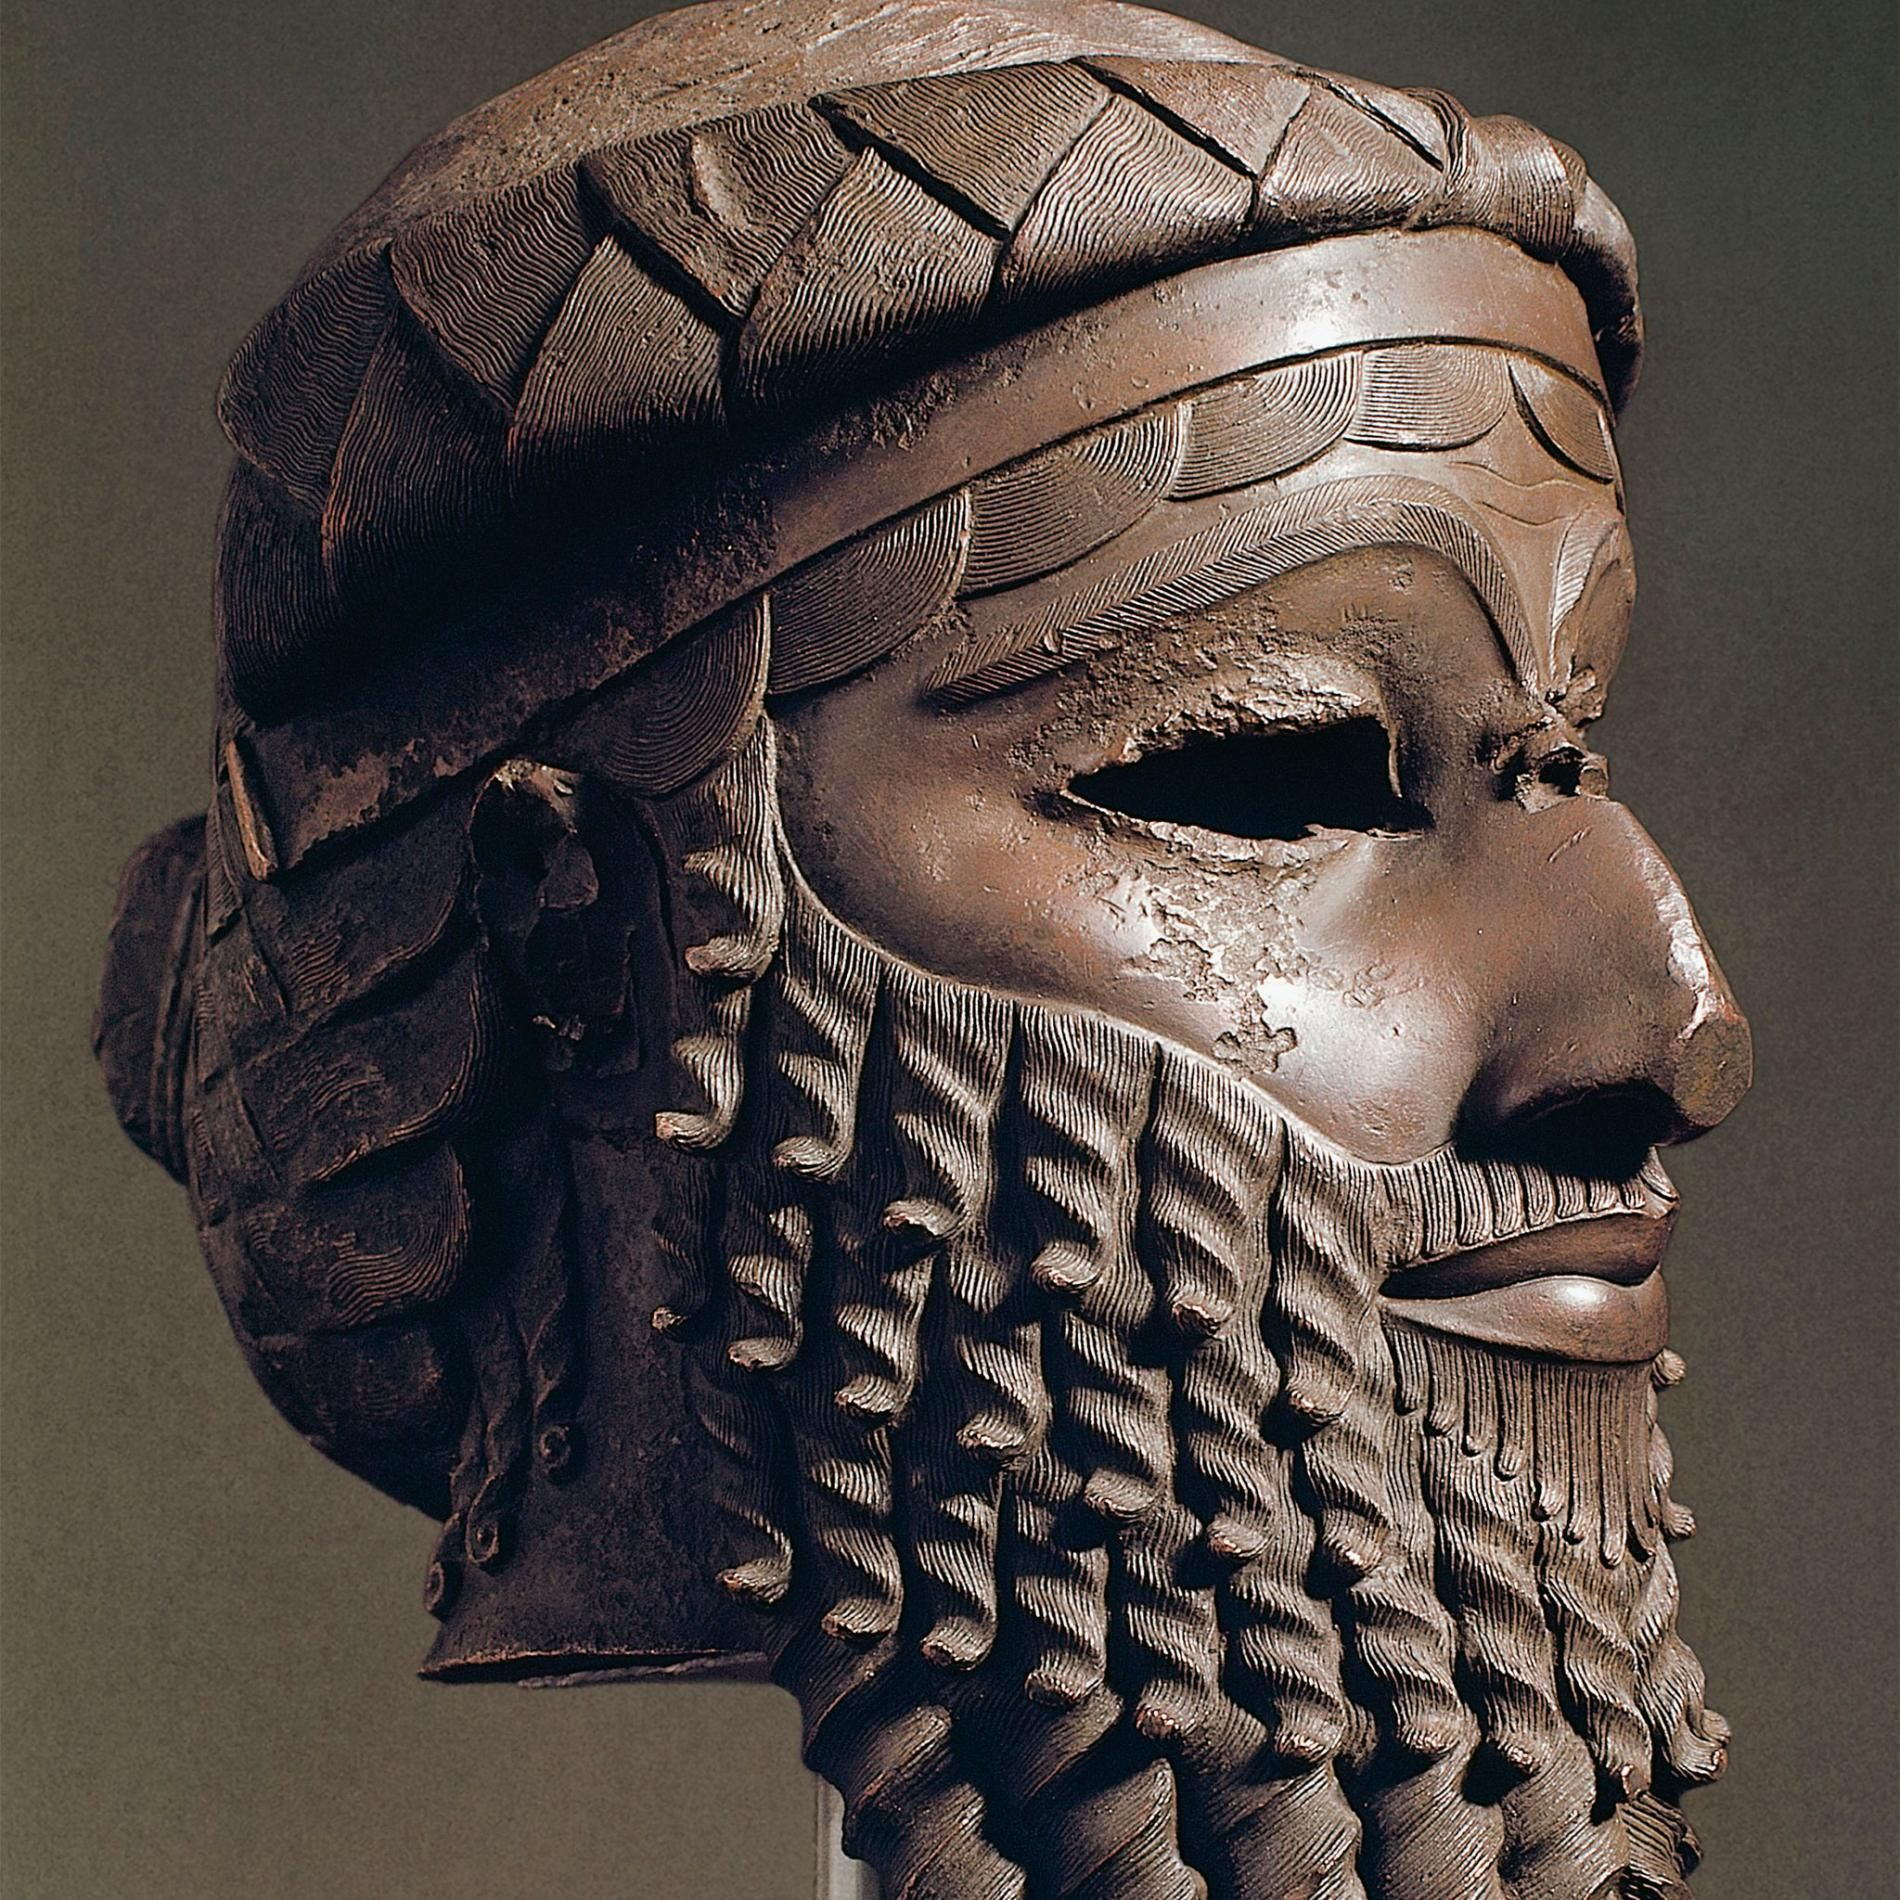 Sargon Of Akkad The Rise And Fall Of An Empire Mesopotamia Ancient Mesopotamia Akkadian Empire